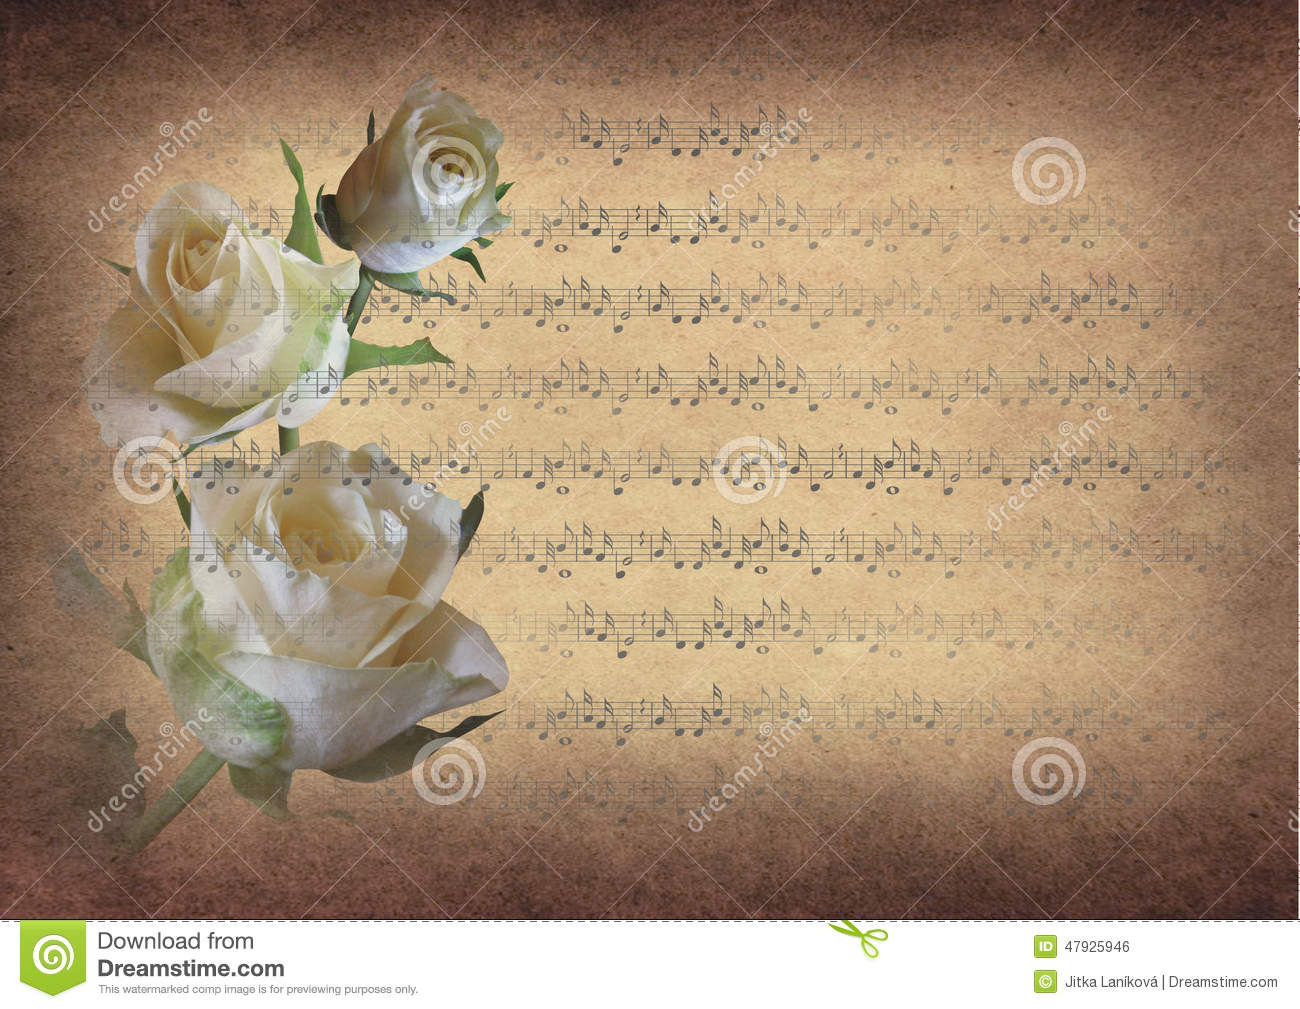 Vintage music notes with roses stock illustration for Paper roses sheet music free